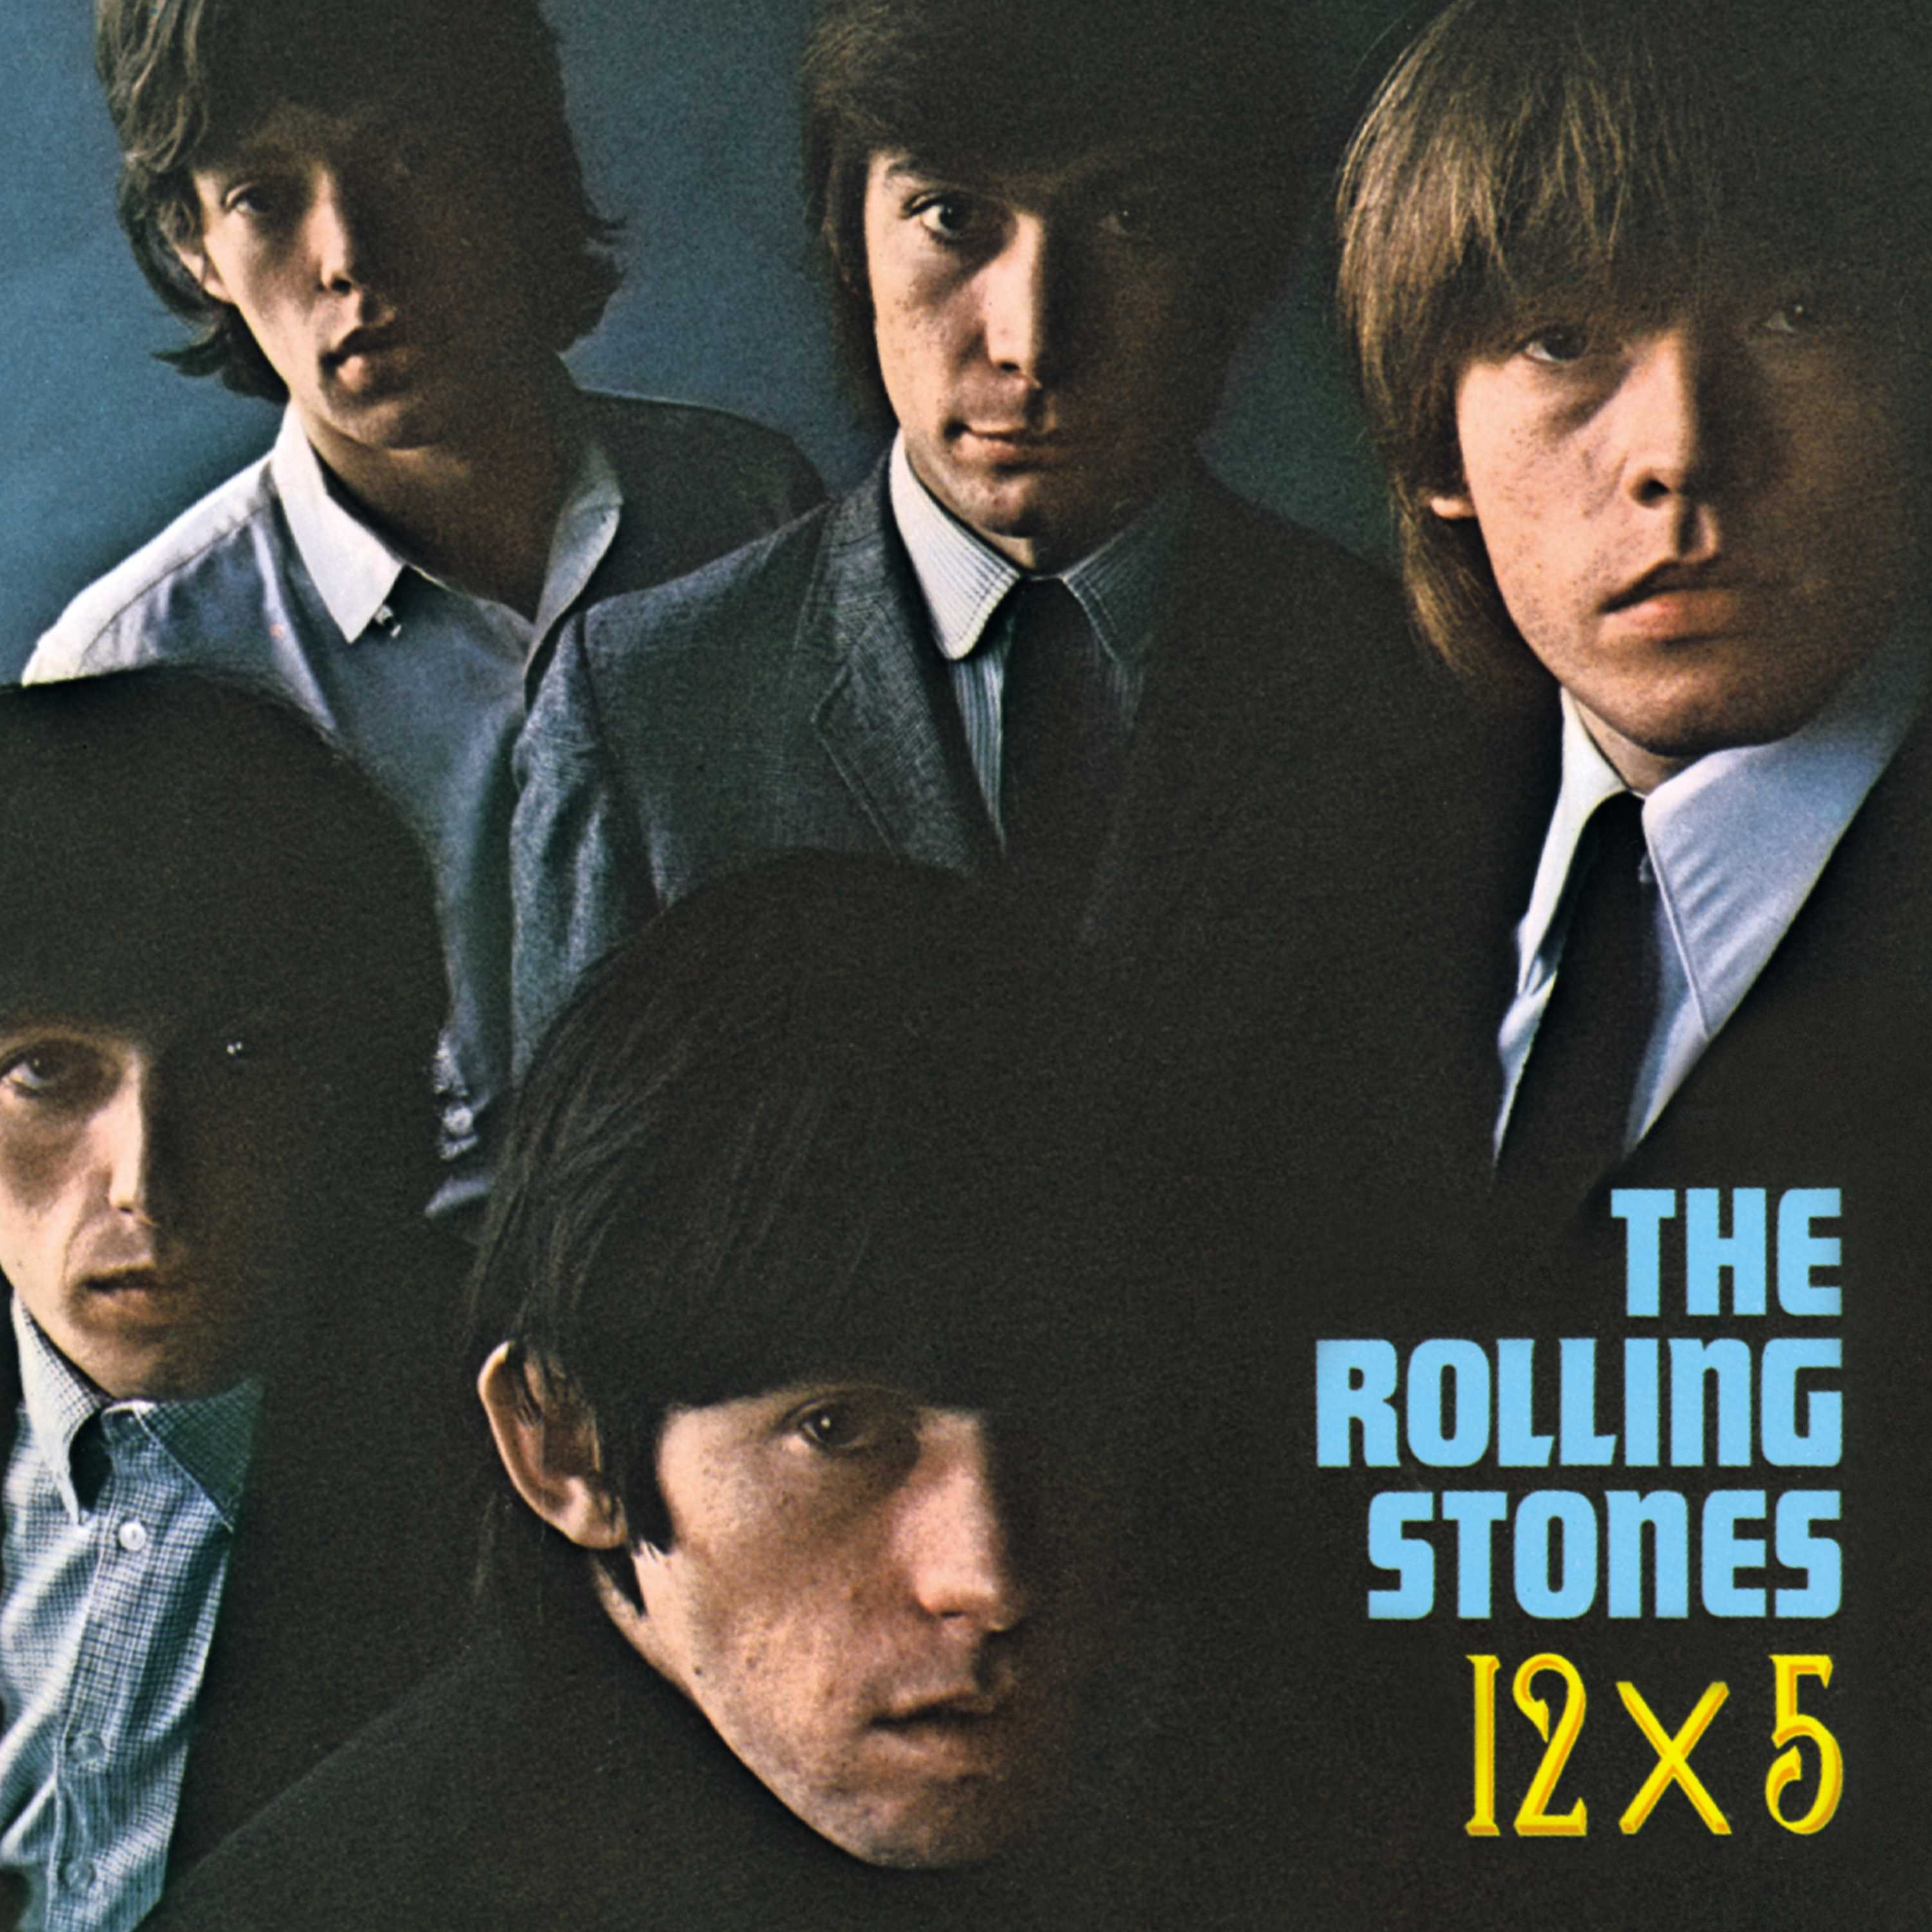 The Rolling Stones - 12 X 5 LP